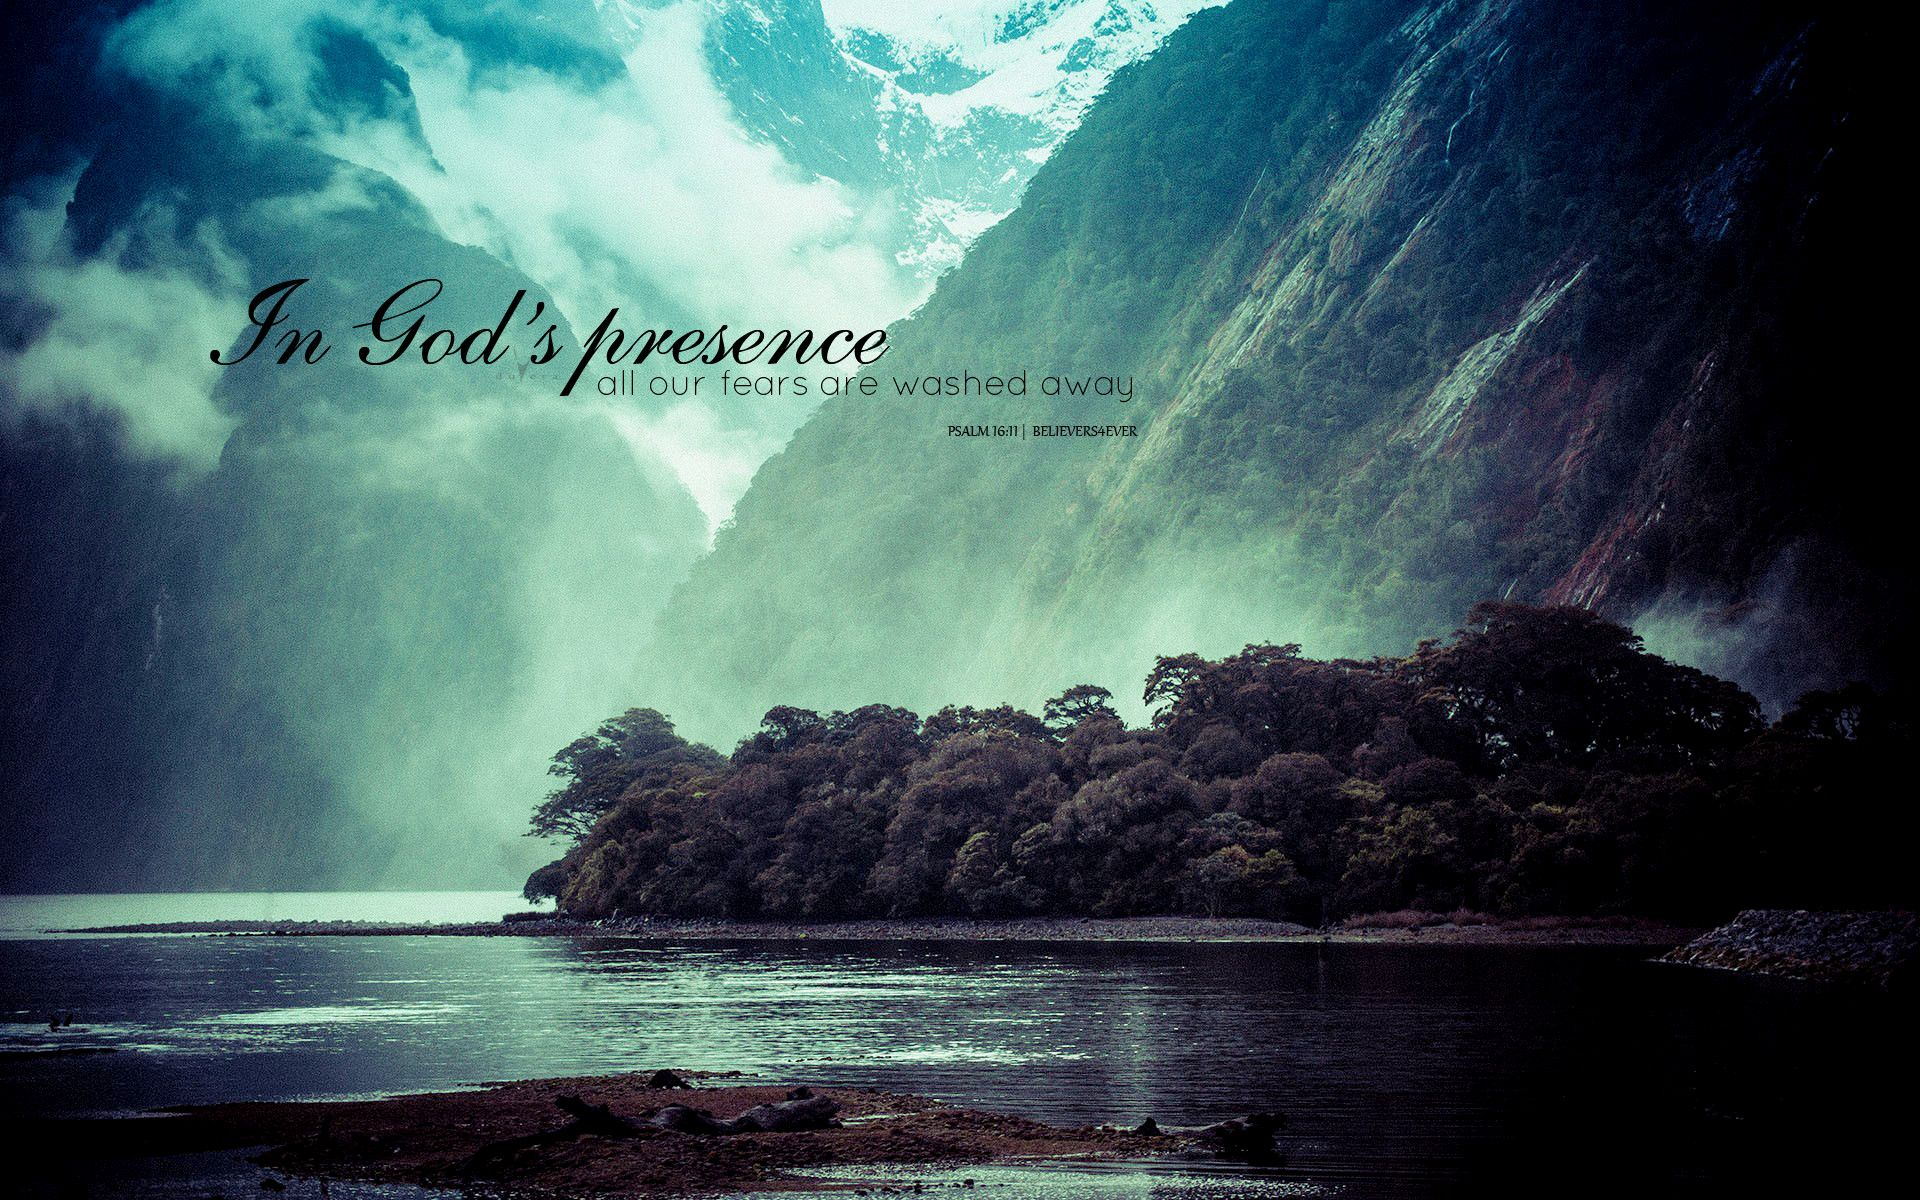 Beautiful Christian Wallpapers For Desktop In 2020 Christian Wallpaper Free Christian Wallpaper Worship Wallpaper